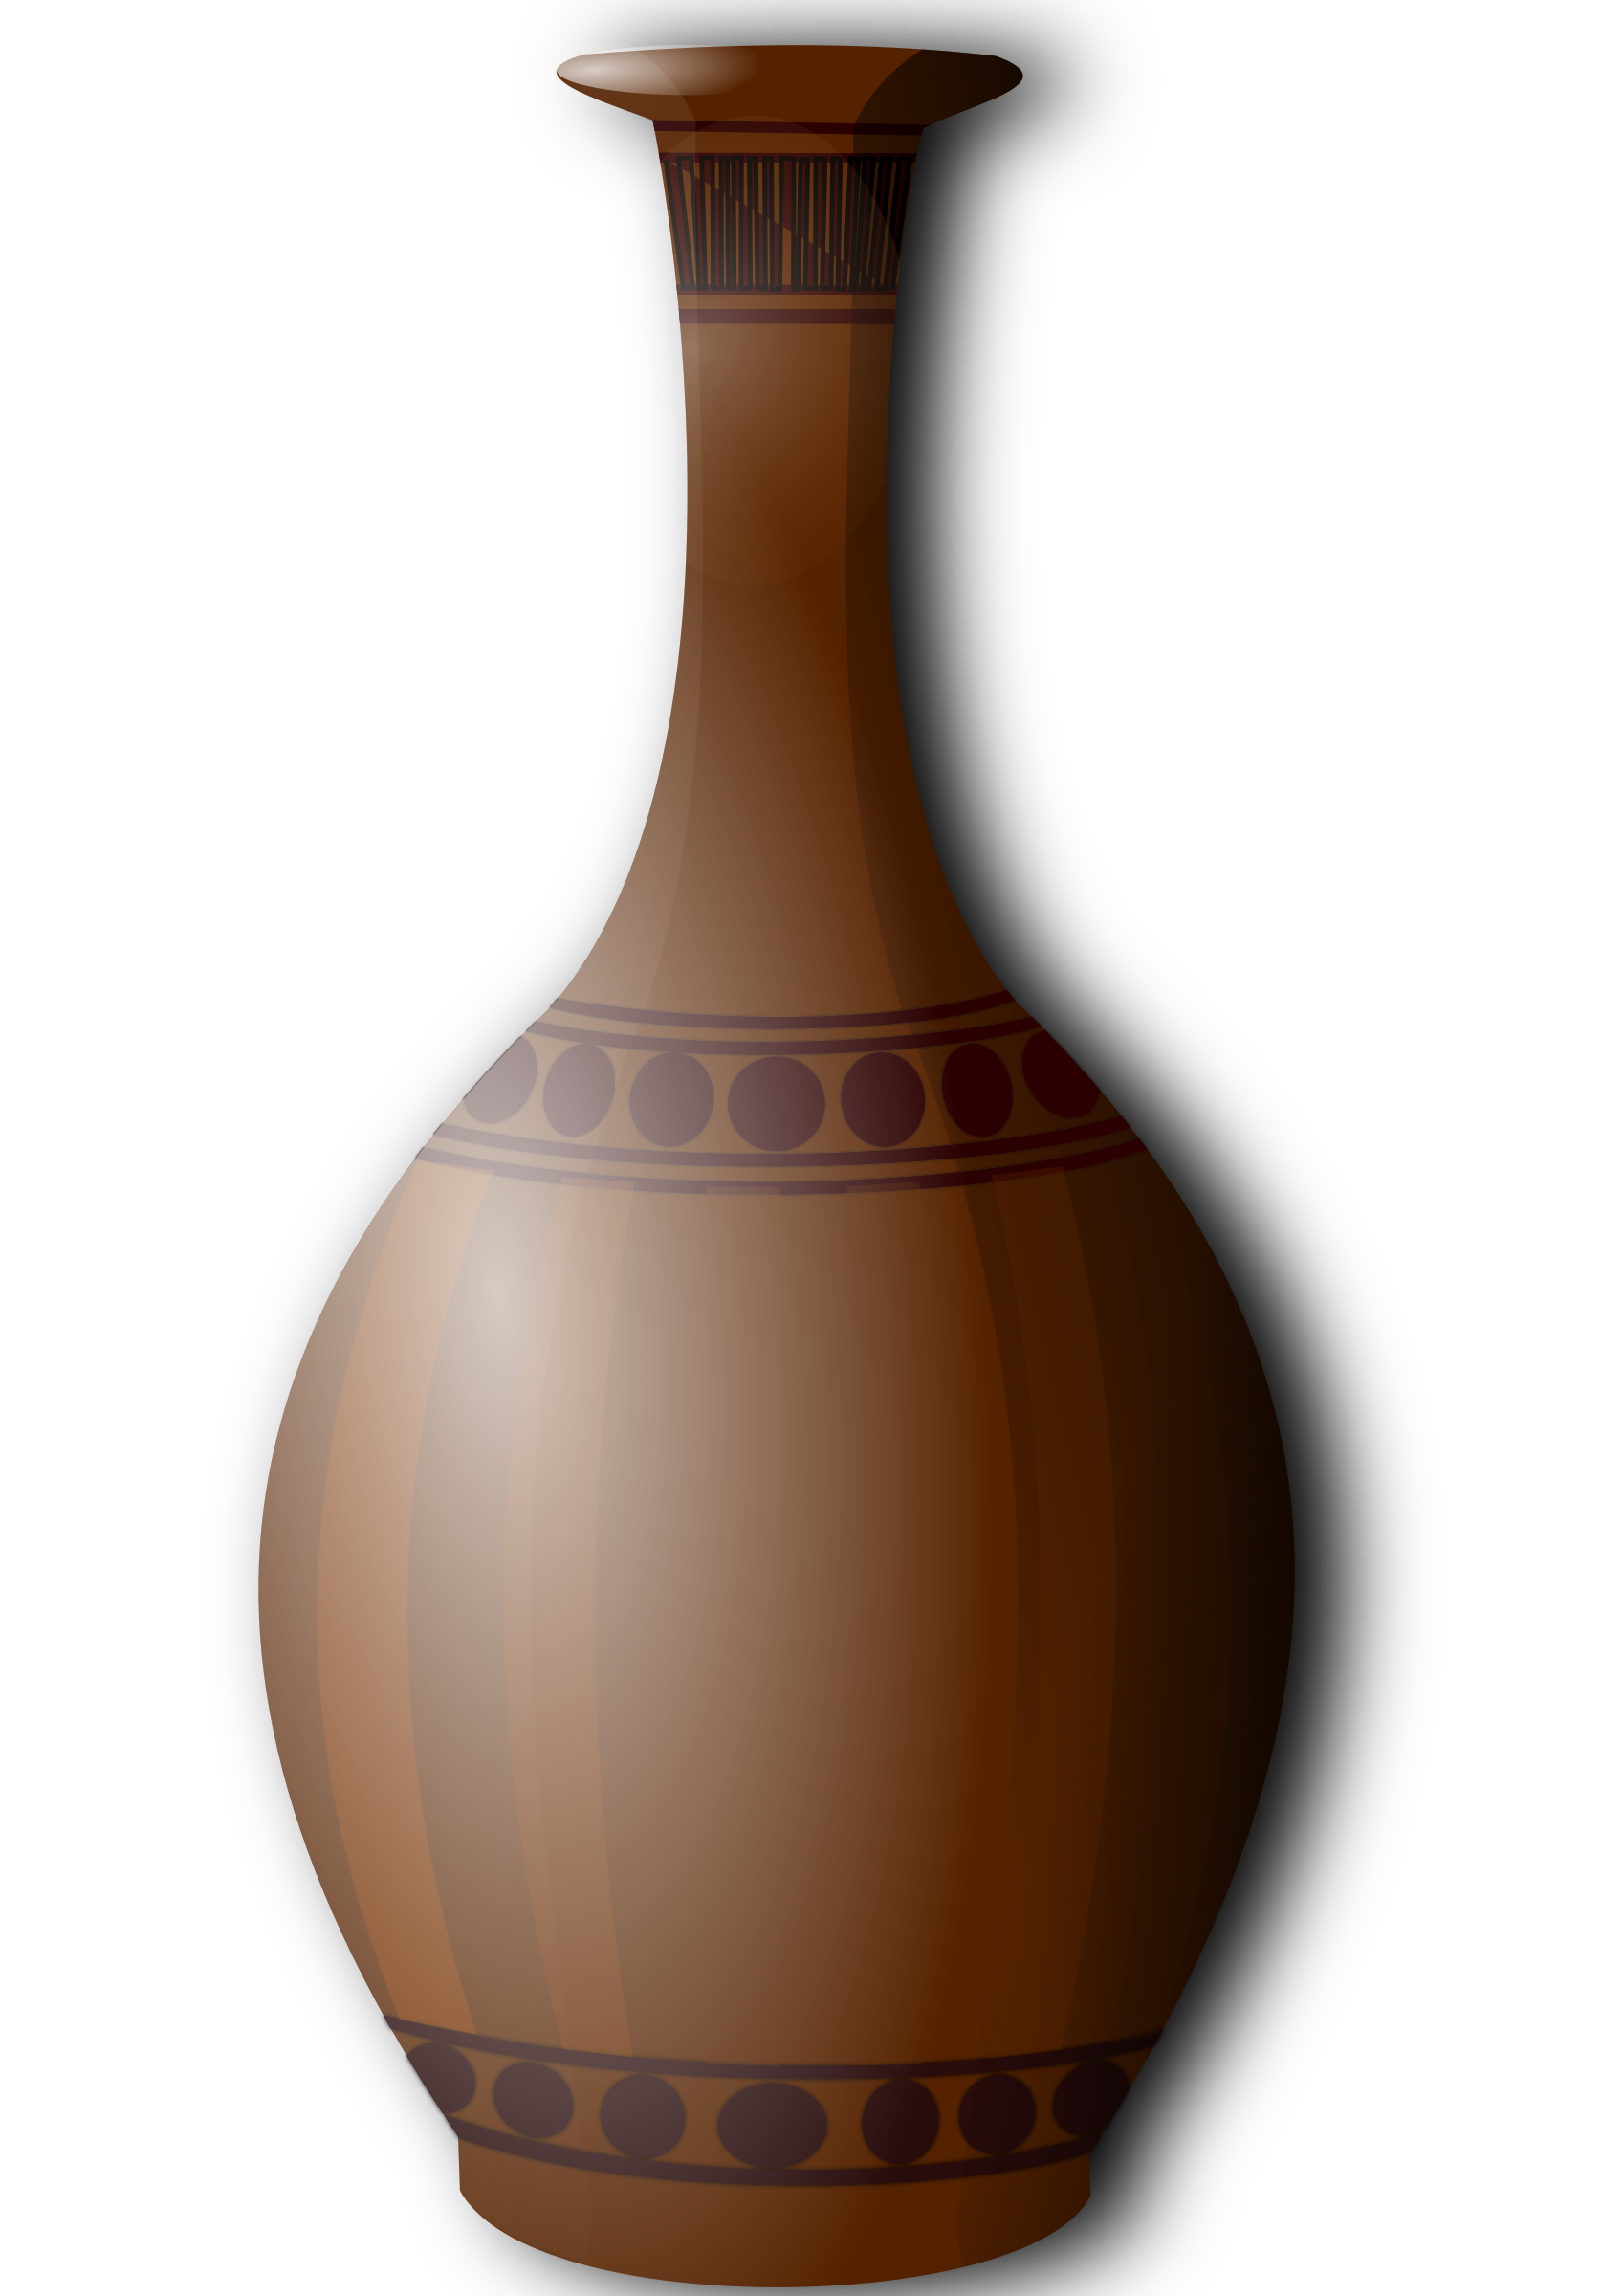 Brown Vase Vector Clipart Image Free Stock Photo